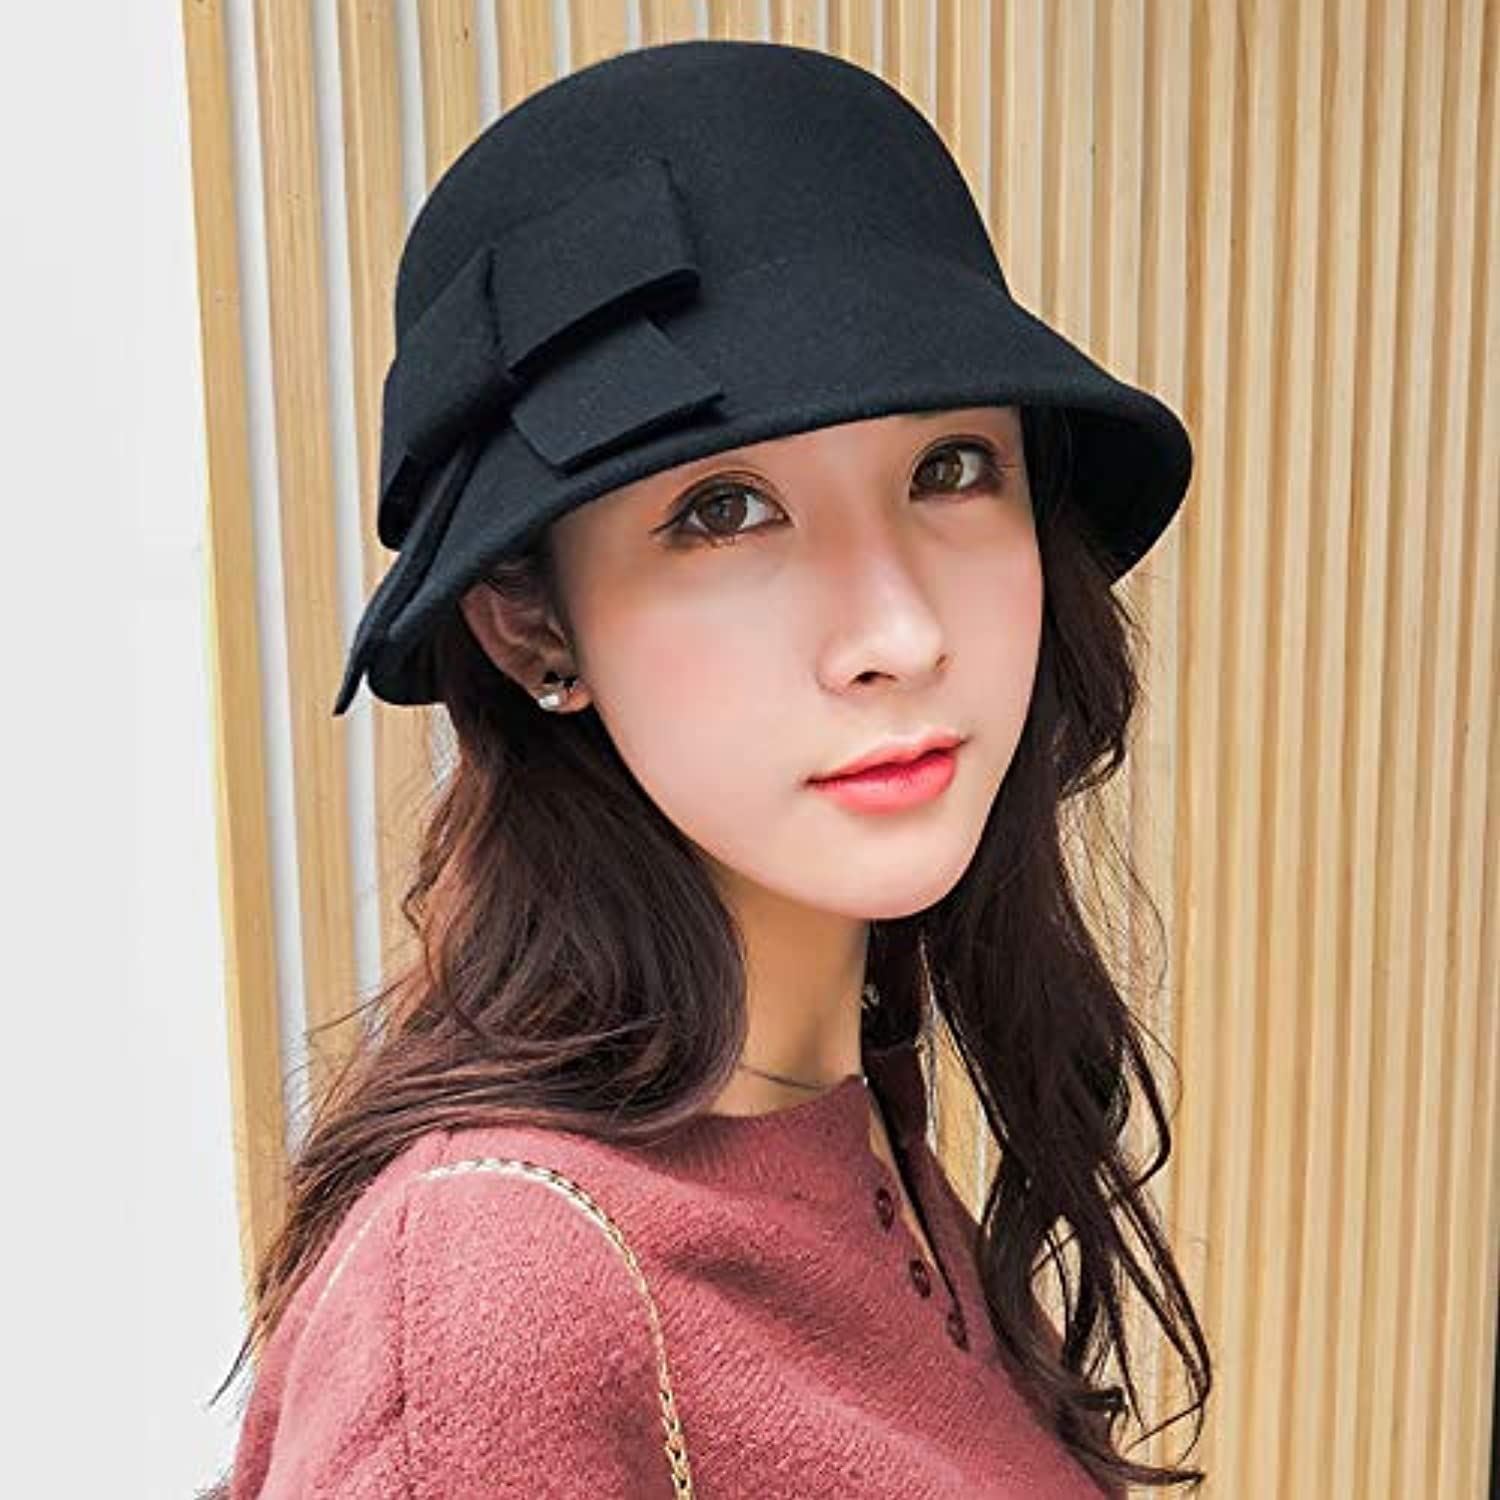 Dvfgsxxht Winter Hats Autumn and winter woolen hat hat autumn pot hat female youth fisherman hat bow fashion wild autumn tide (color   Black, Size   M(56-58cm)) Warm hat